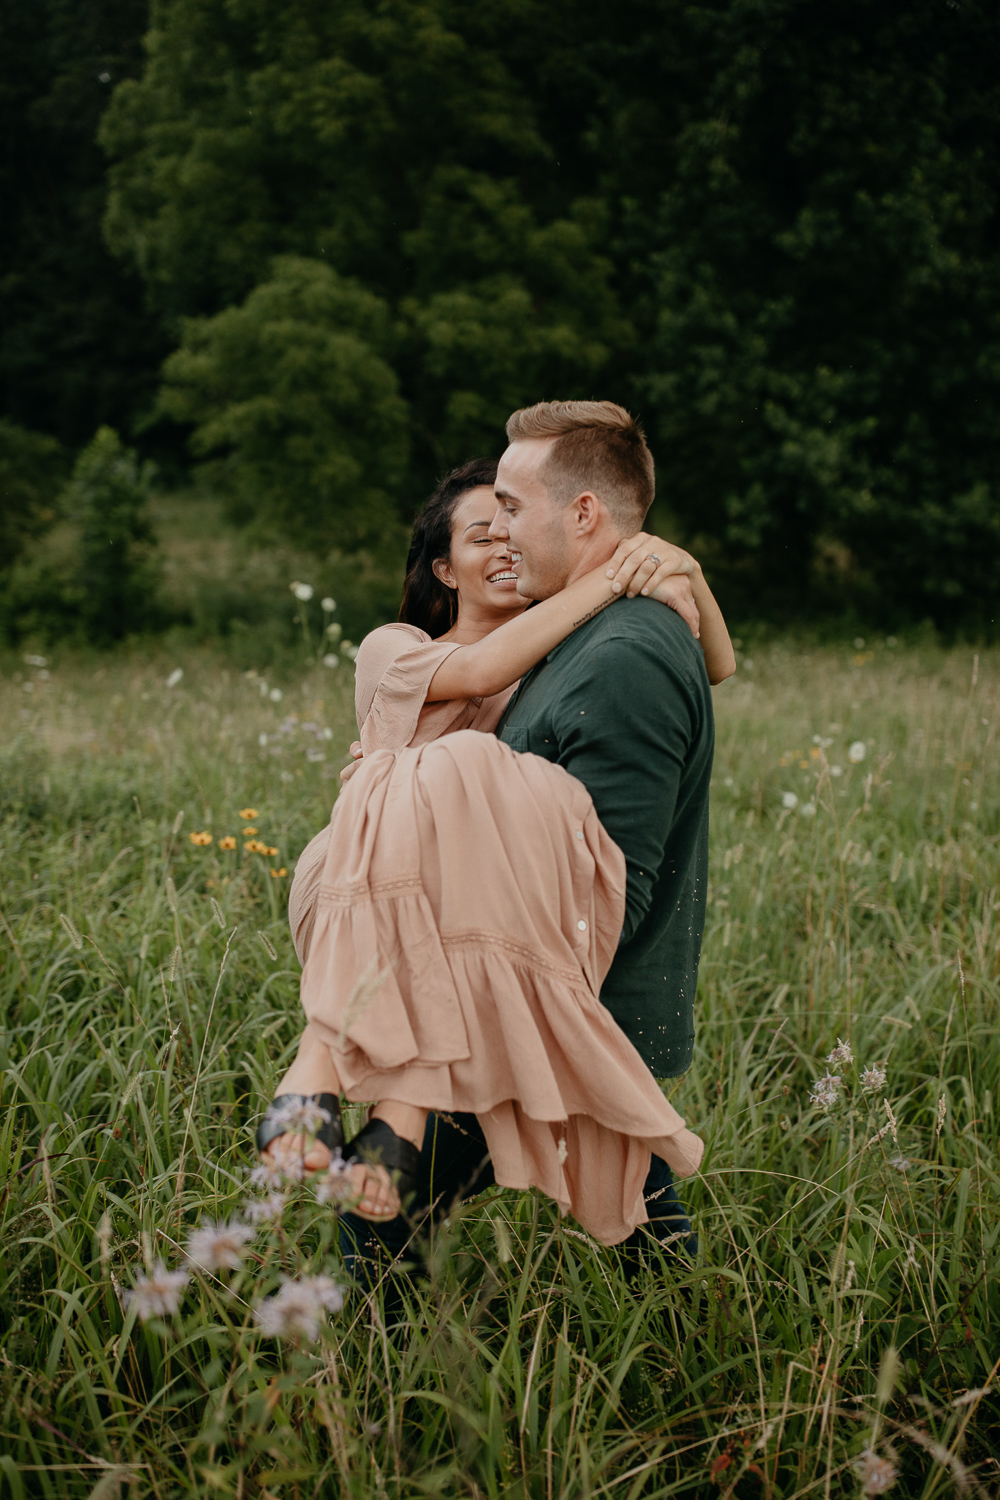 ariannamtorres and isaac engagement session at cades cove smoky mountains elopement-71.jpg